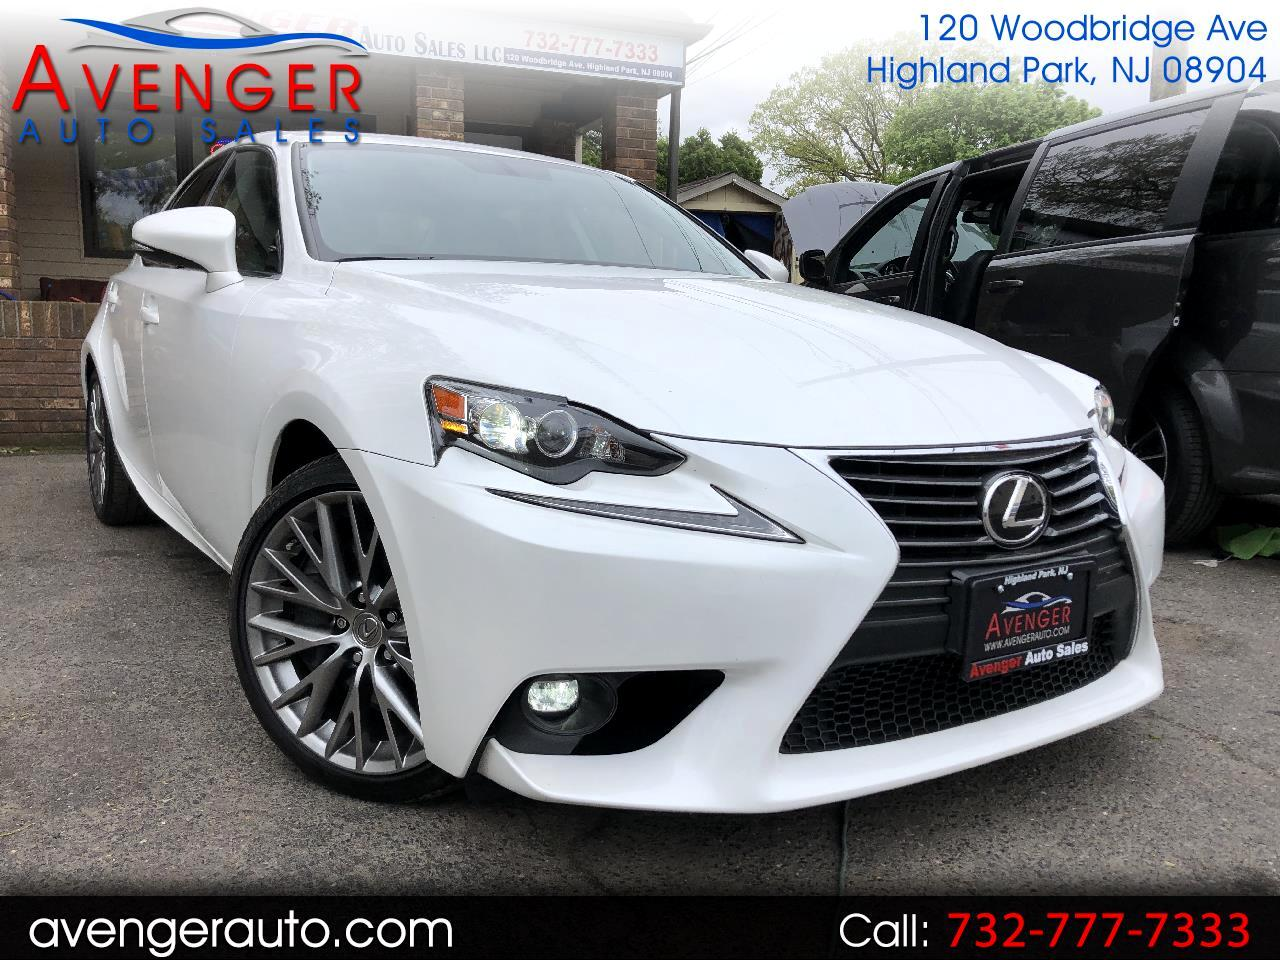 2016 Lexus IS IS 300 AWD